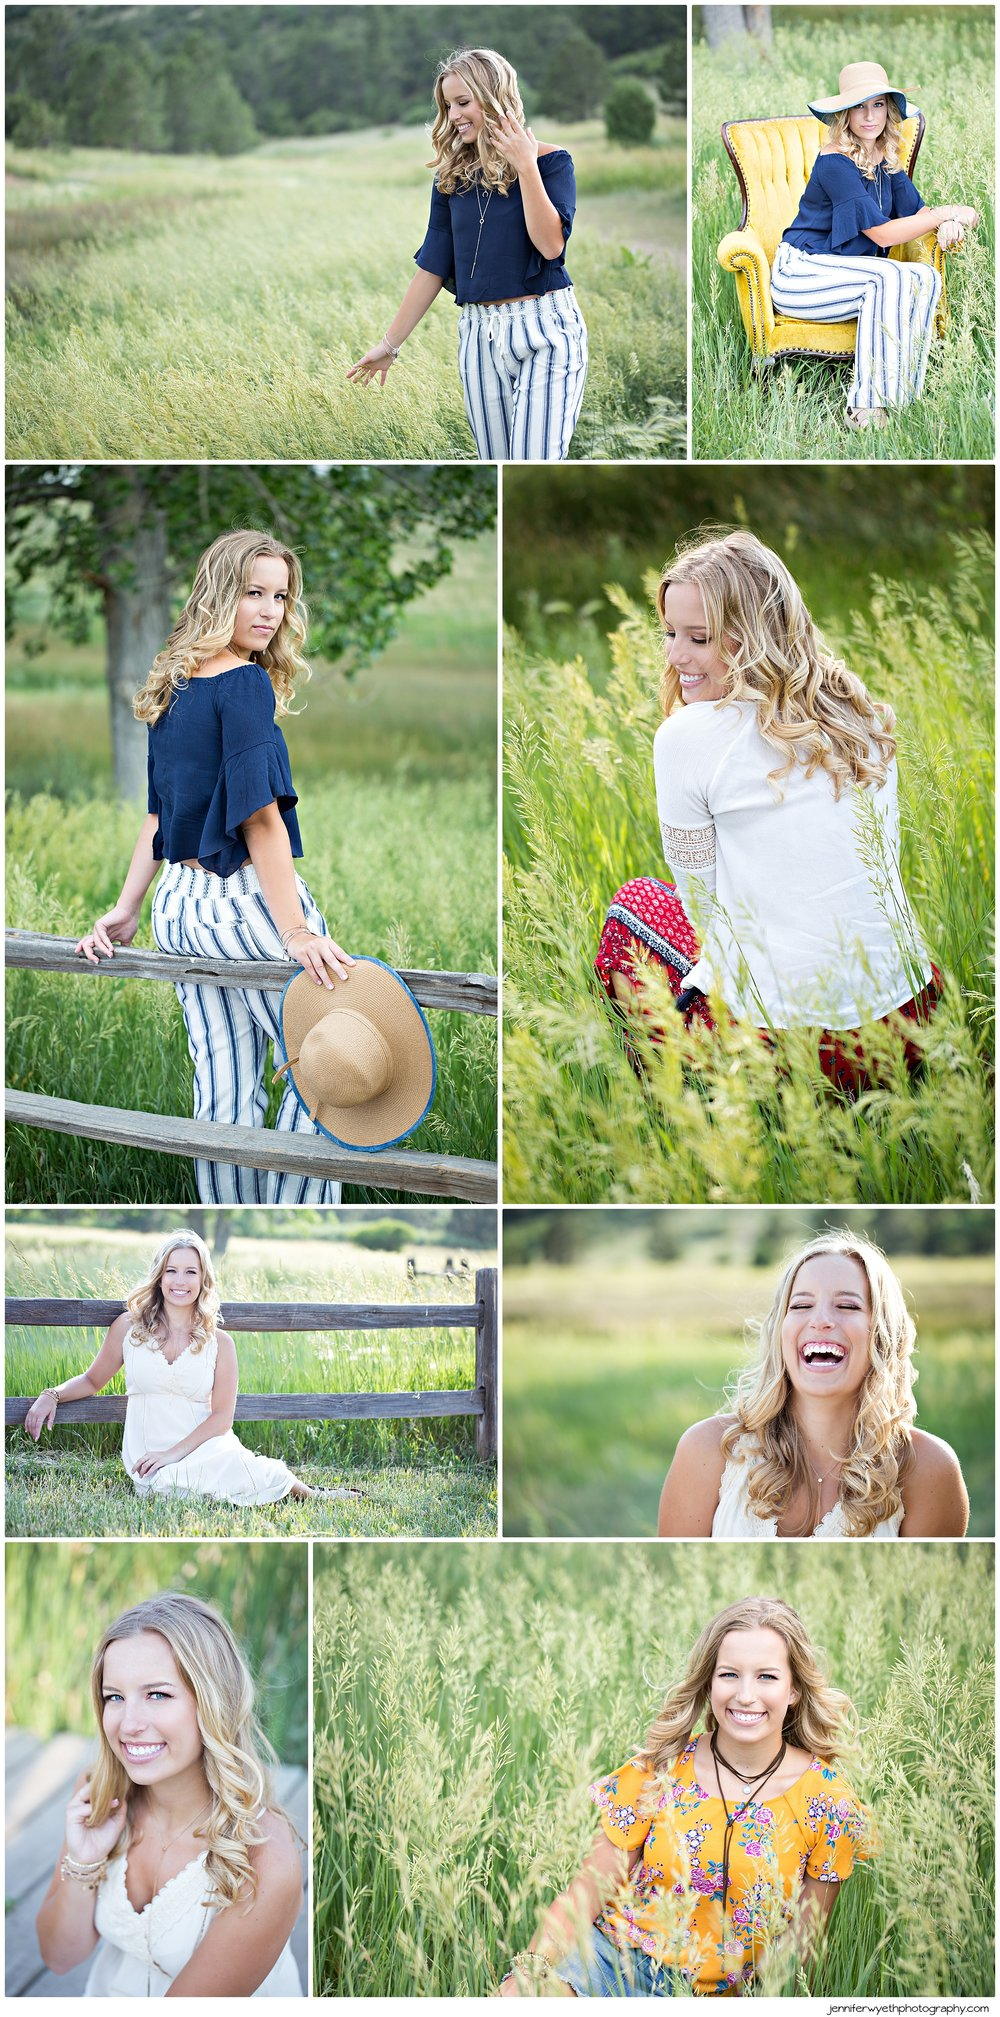 Jennifer-Wyeth-photography-senior-pictures-colorado-springs-photographer_0223.jpg